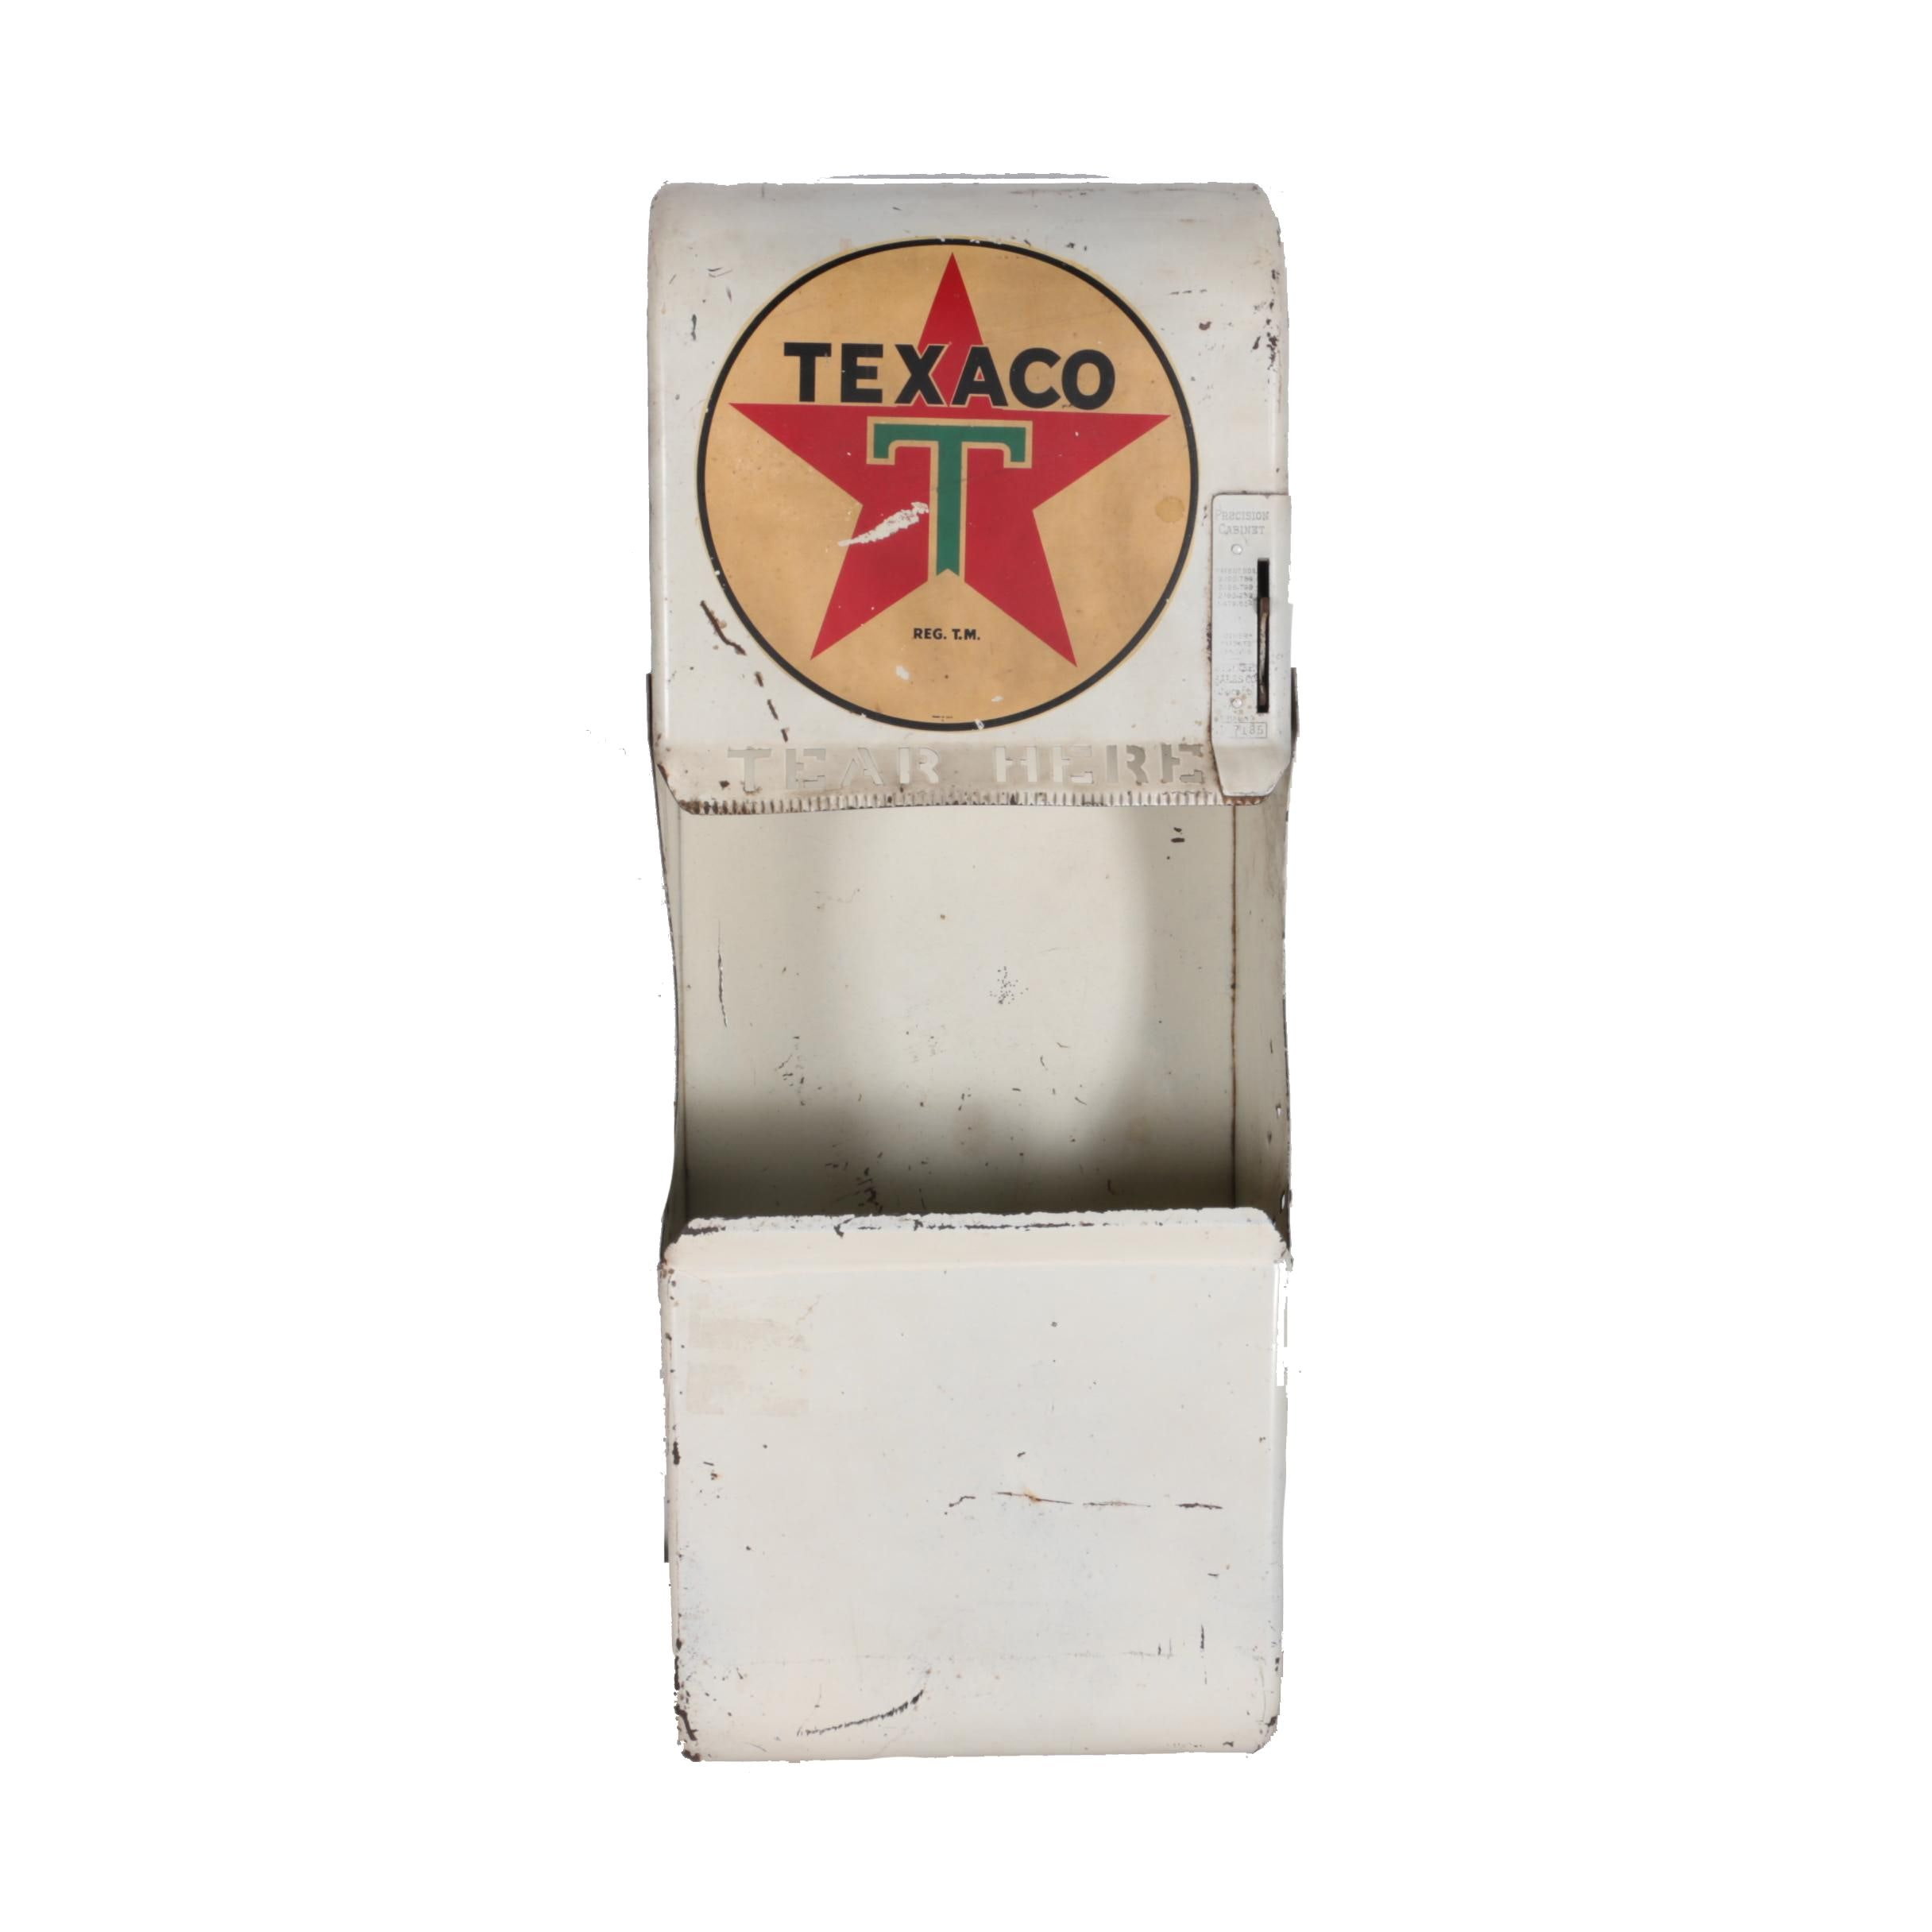 Vintage Texaco Metal Paper Towel Dispenser